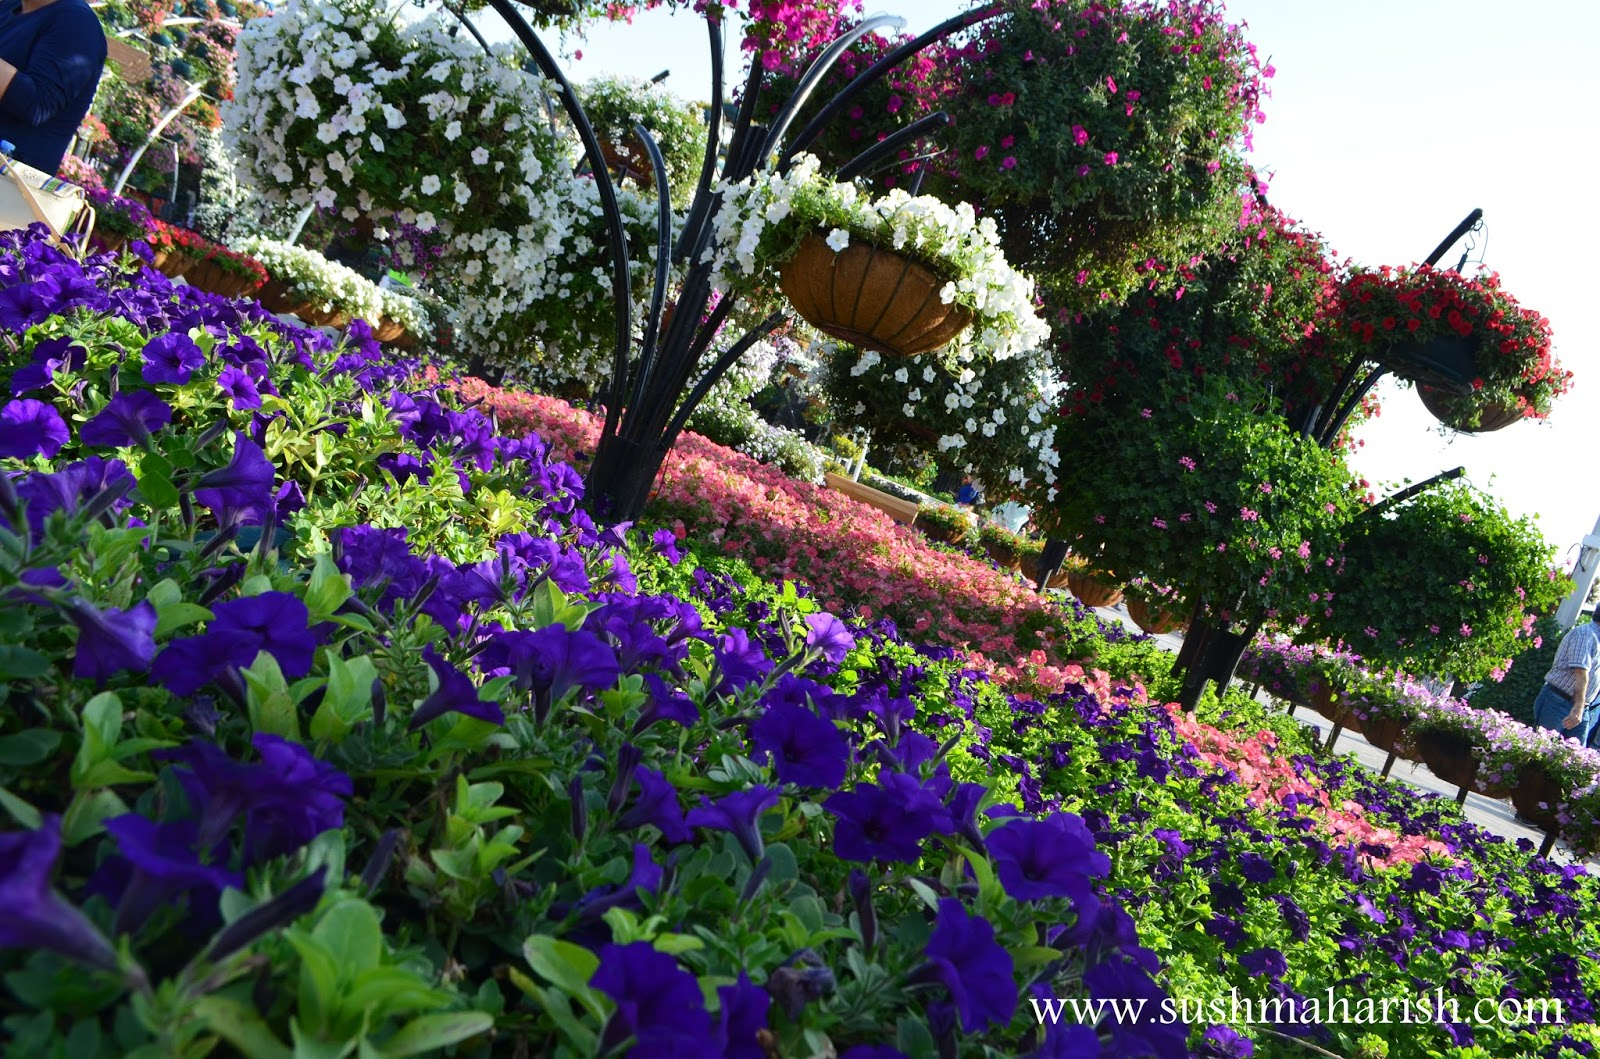 Exploring Beyond The Skyscrapers. Largest Flower Garden Of The World - Miracle Garden Dubai. 33